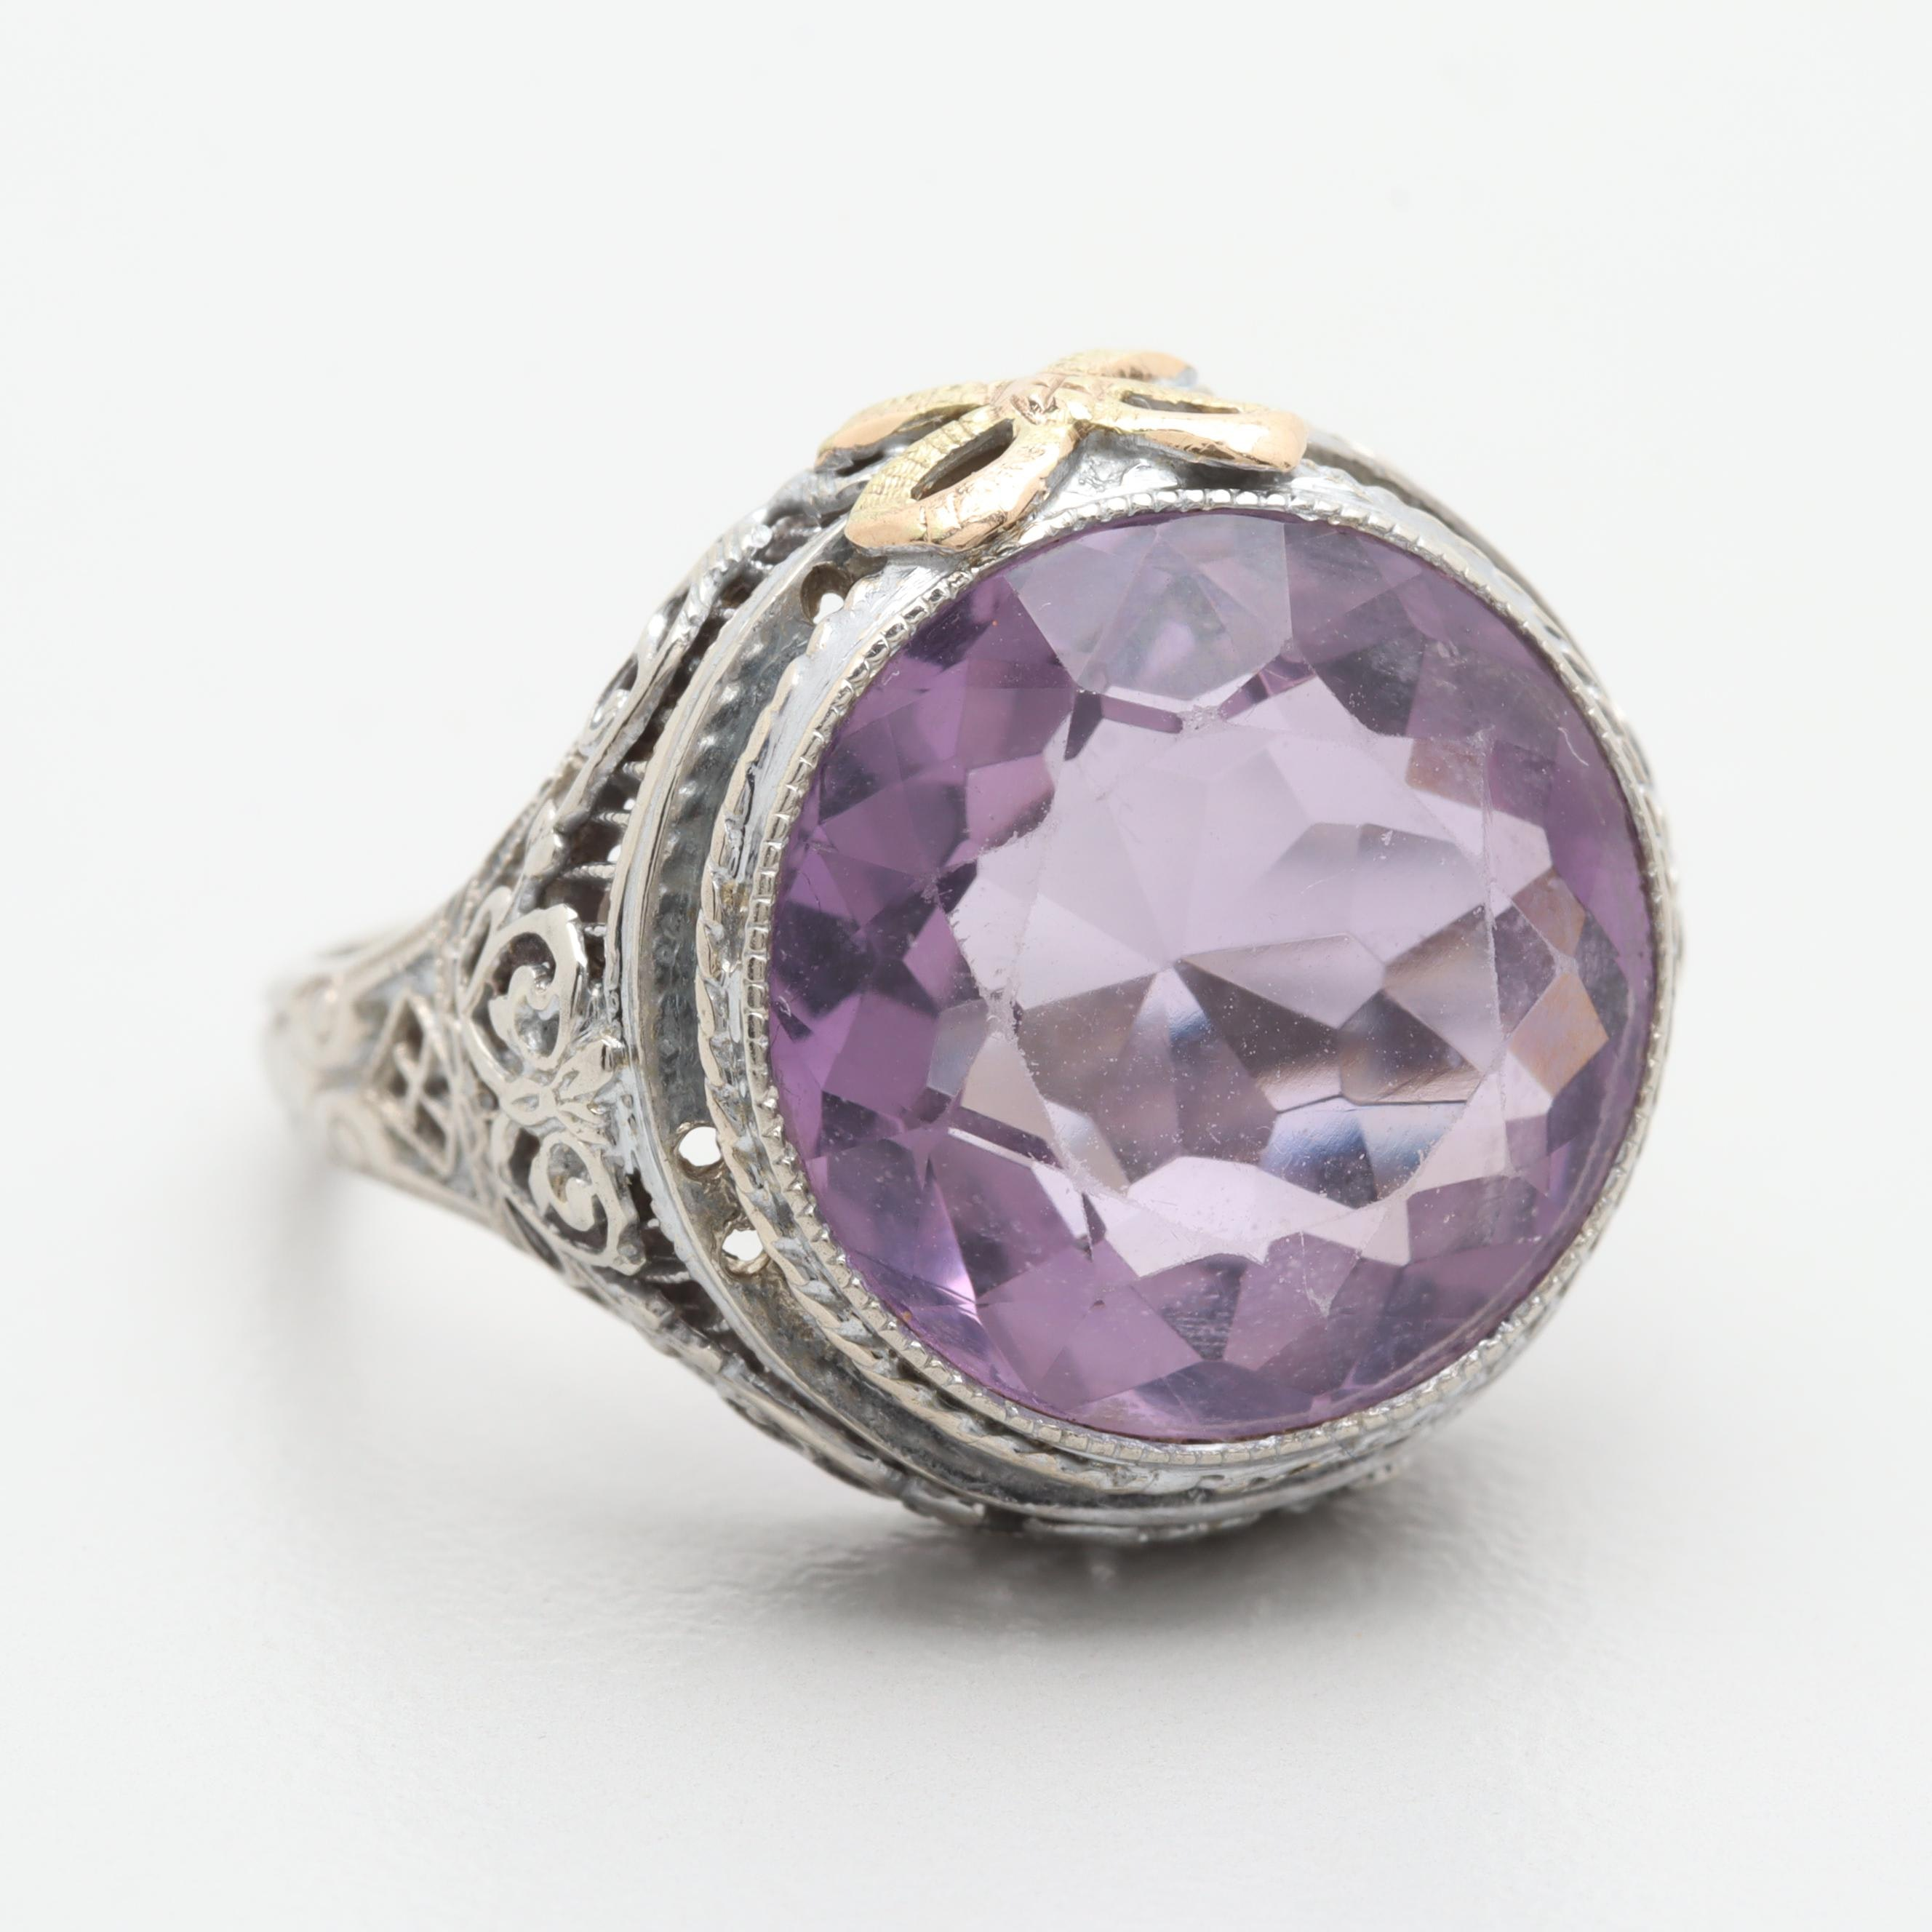 Edwardian 14K White Gold Amethyst Ring With Yellow Gold Accent